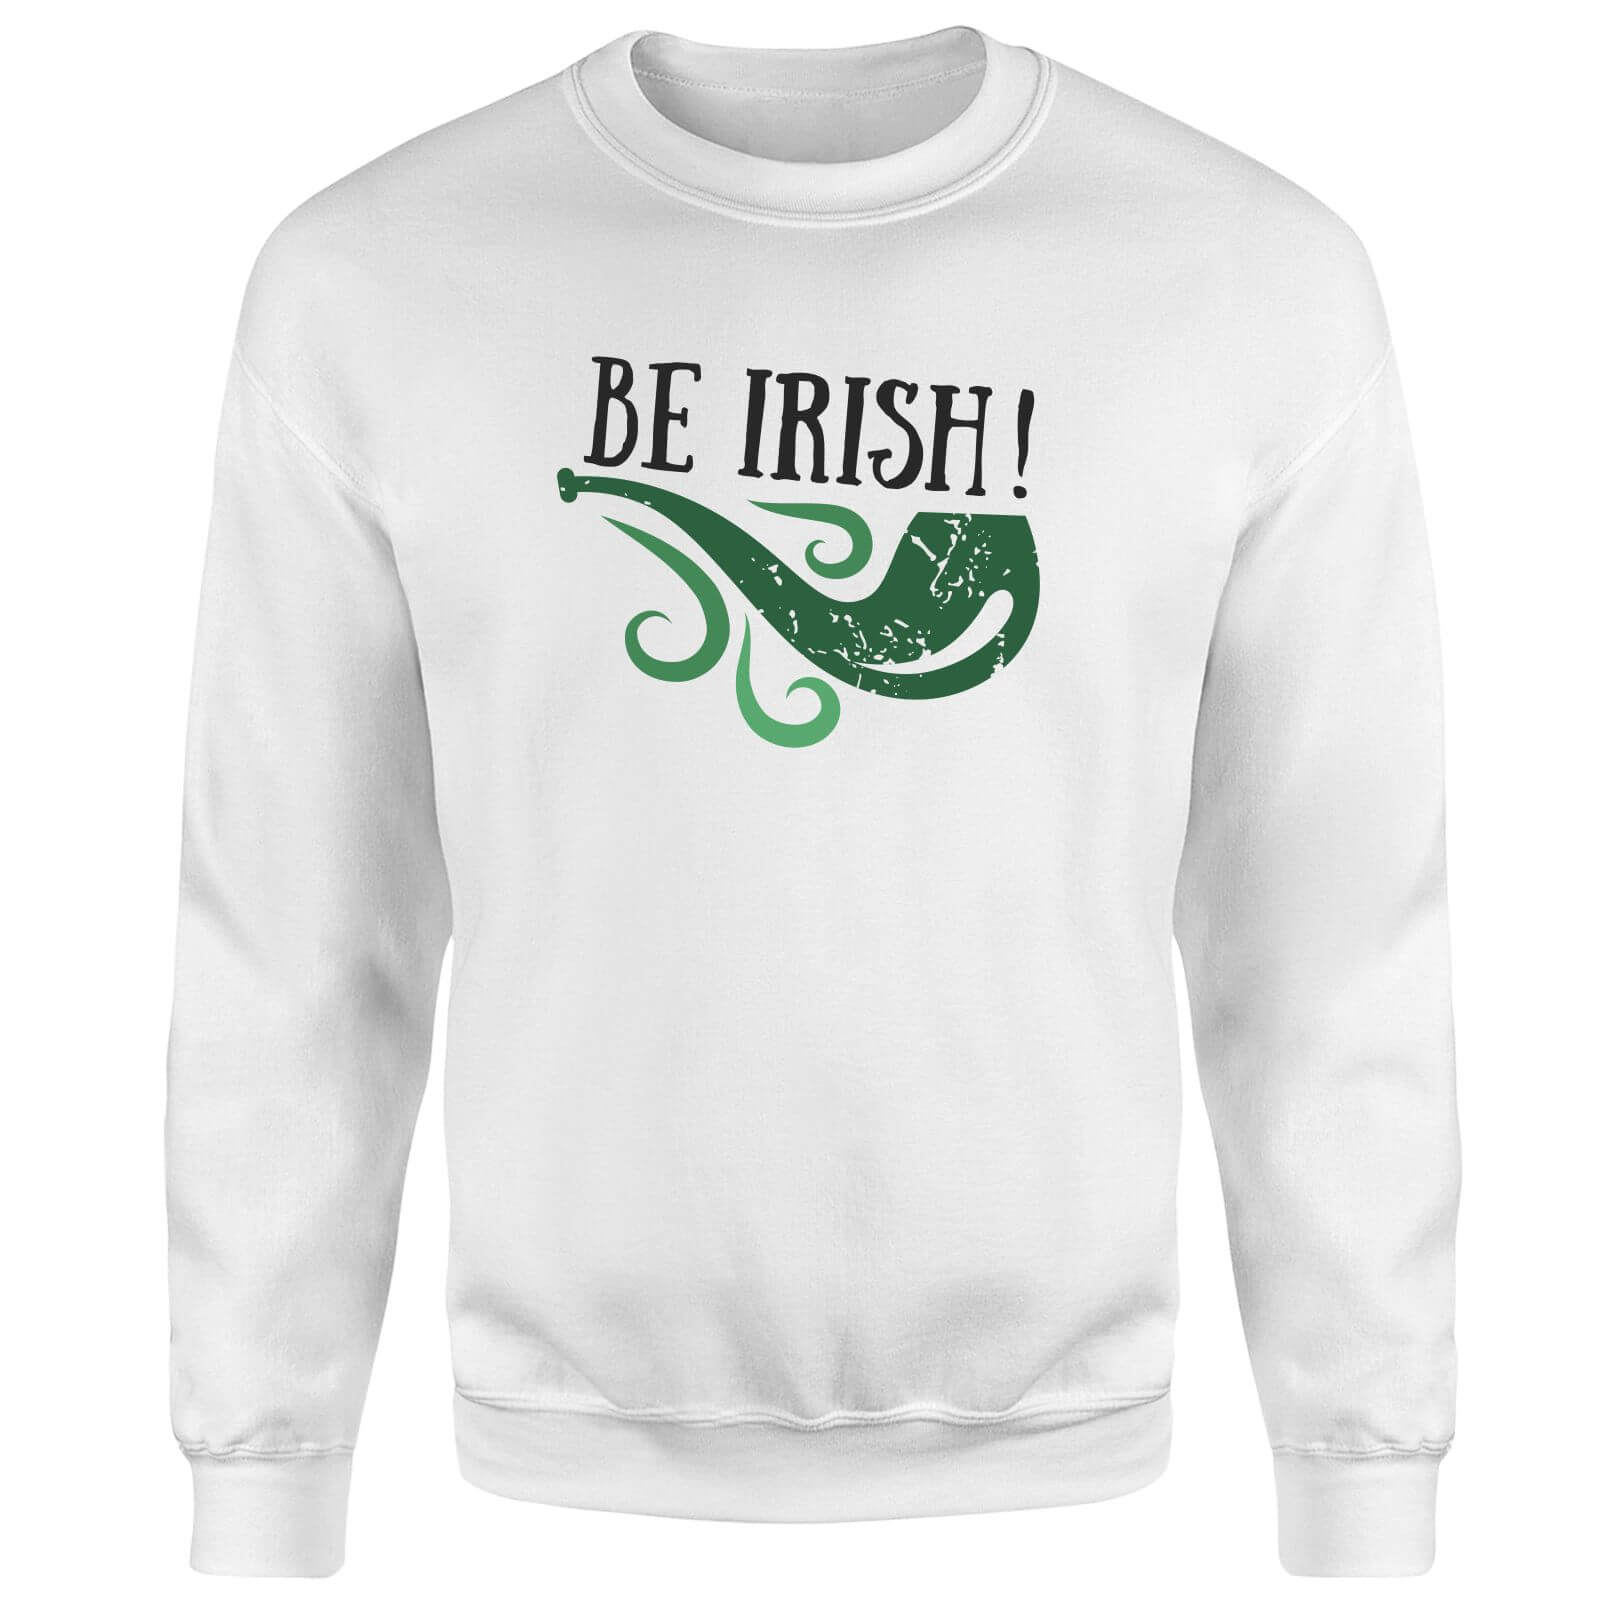 Be Irish Sweatshirt - White